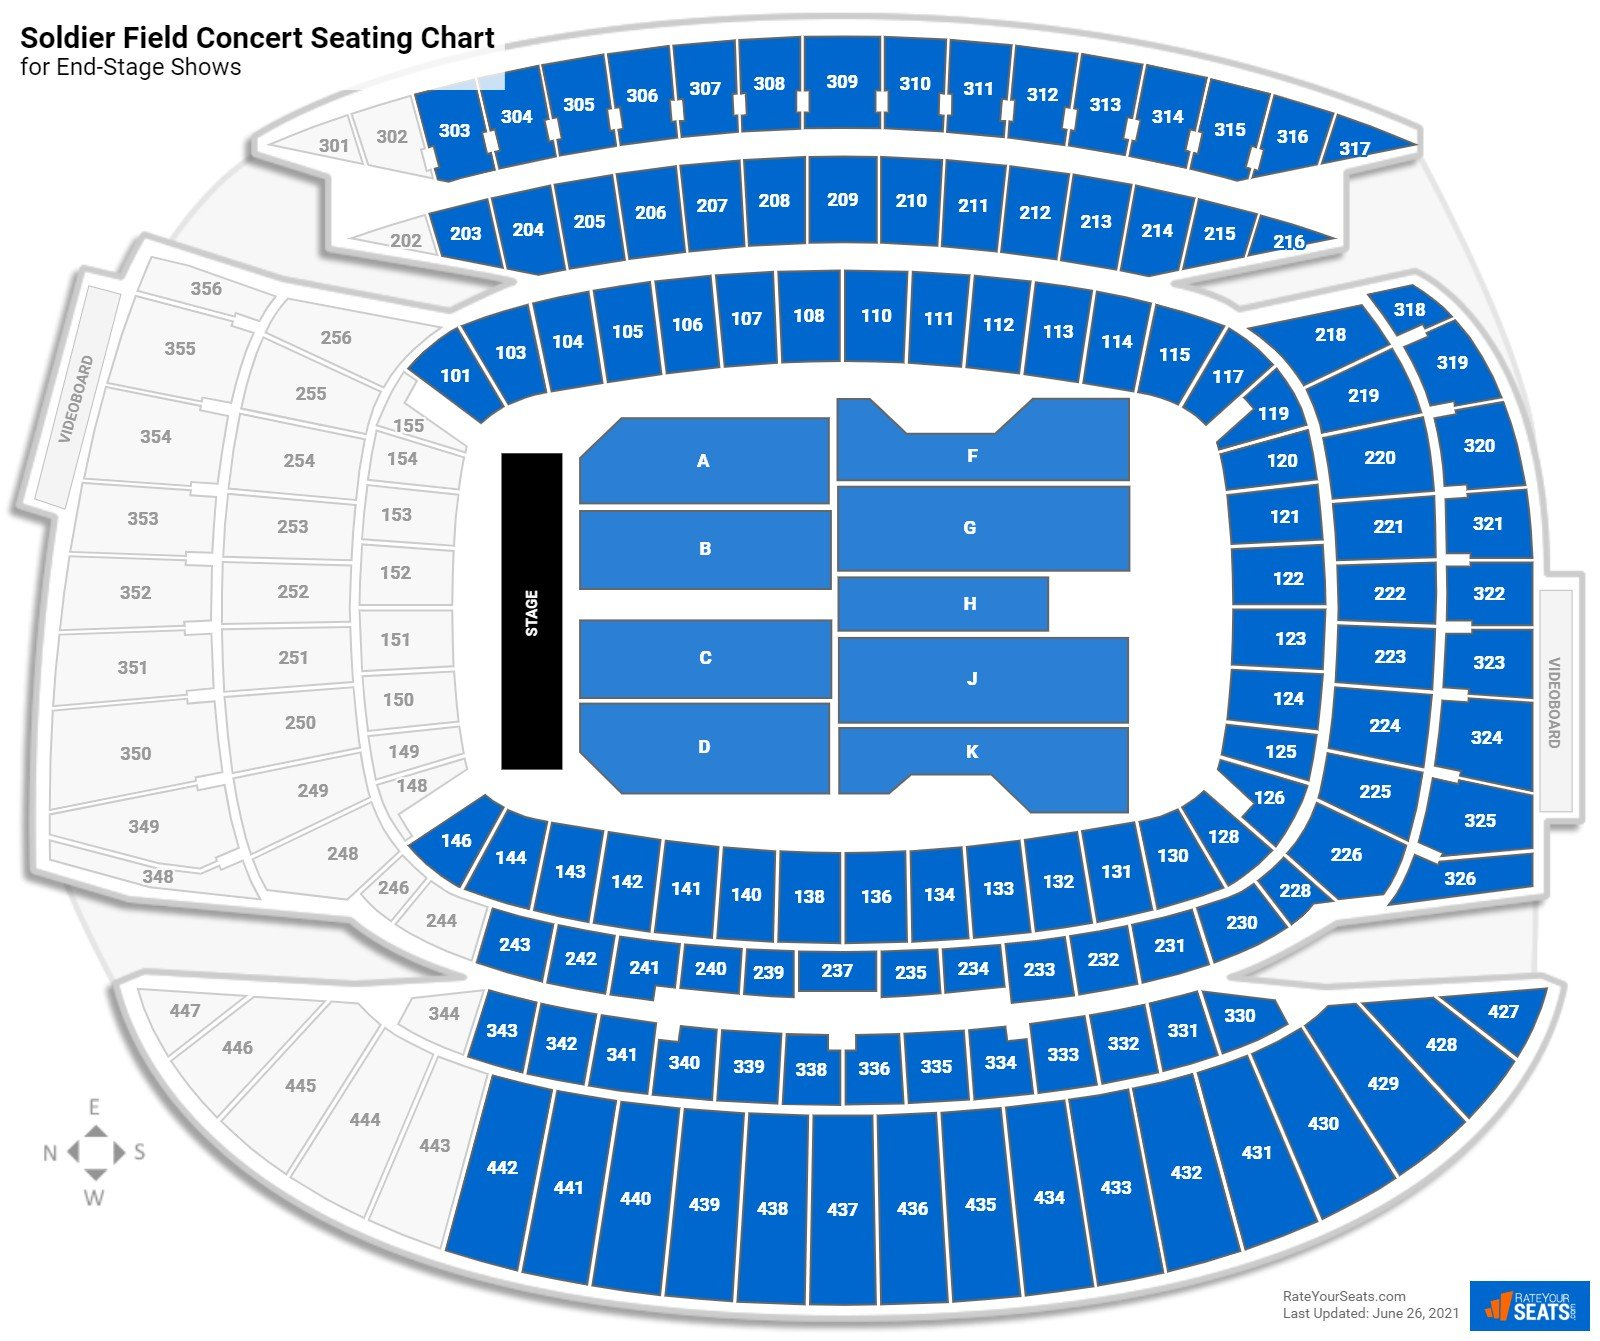 Soldier Field Seating Chart for Concerts